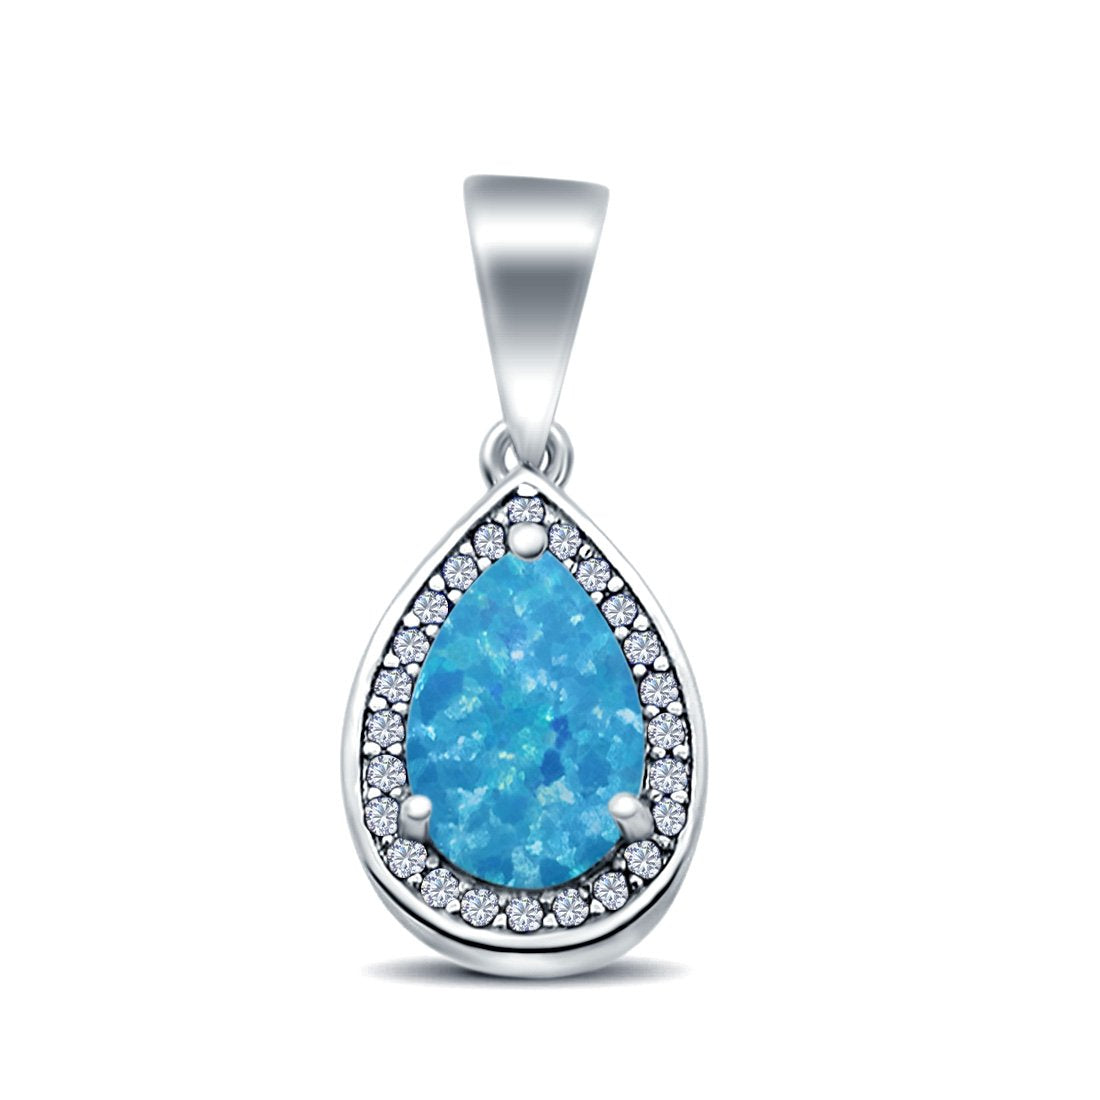 Pear Lab Created Opal Simulated Cubic Zirconia 925 Sterling Silver Charm Pendant